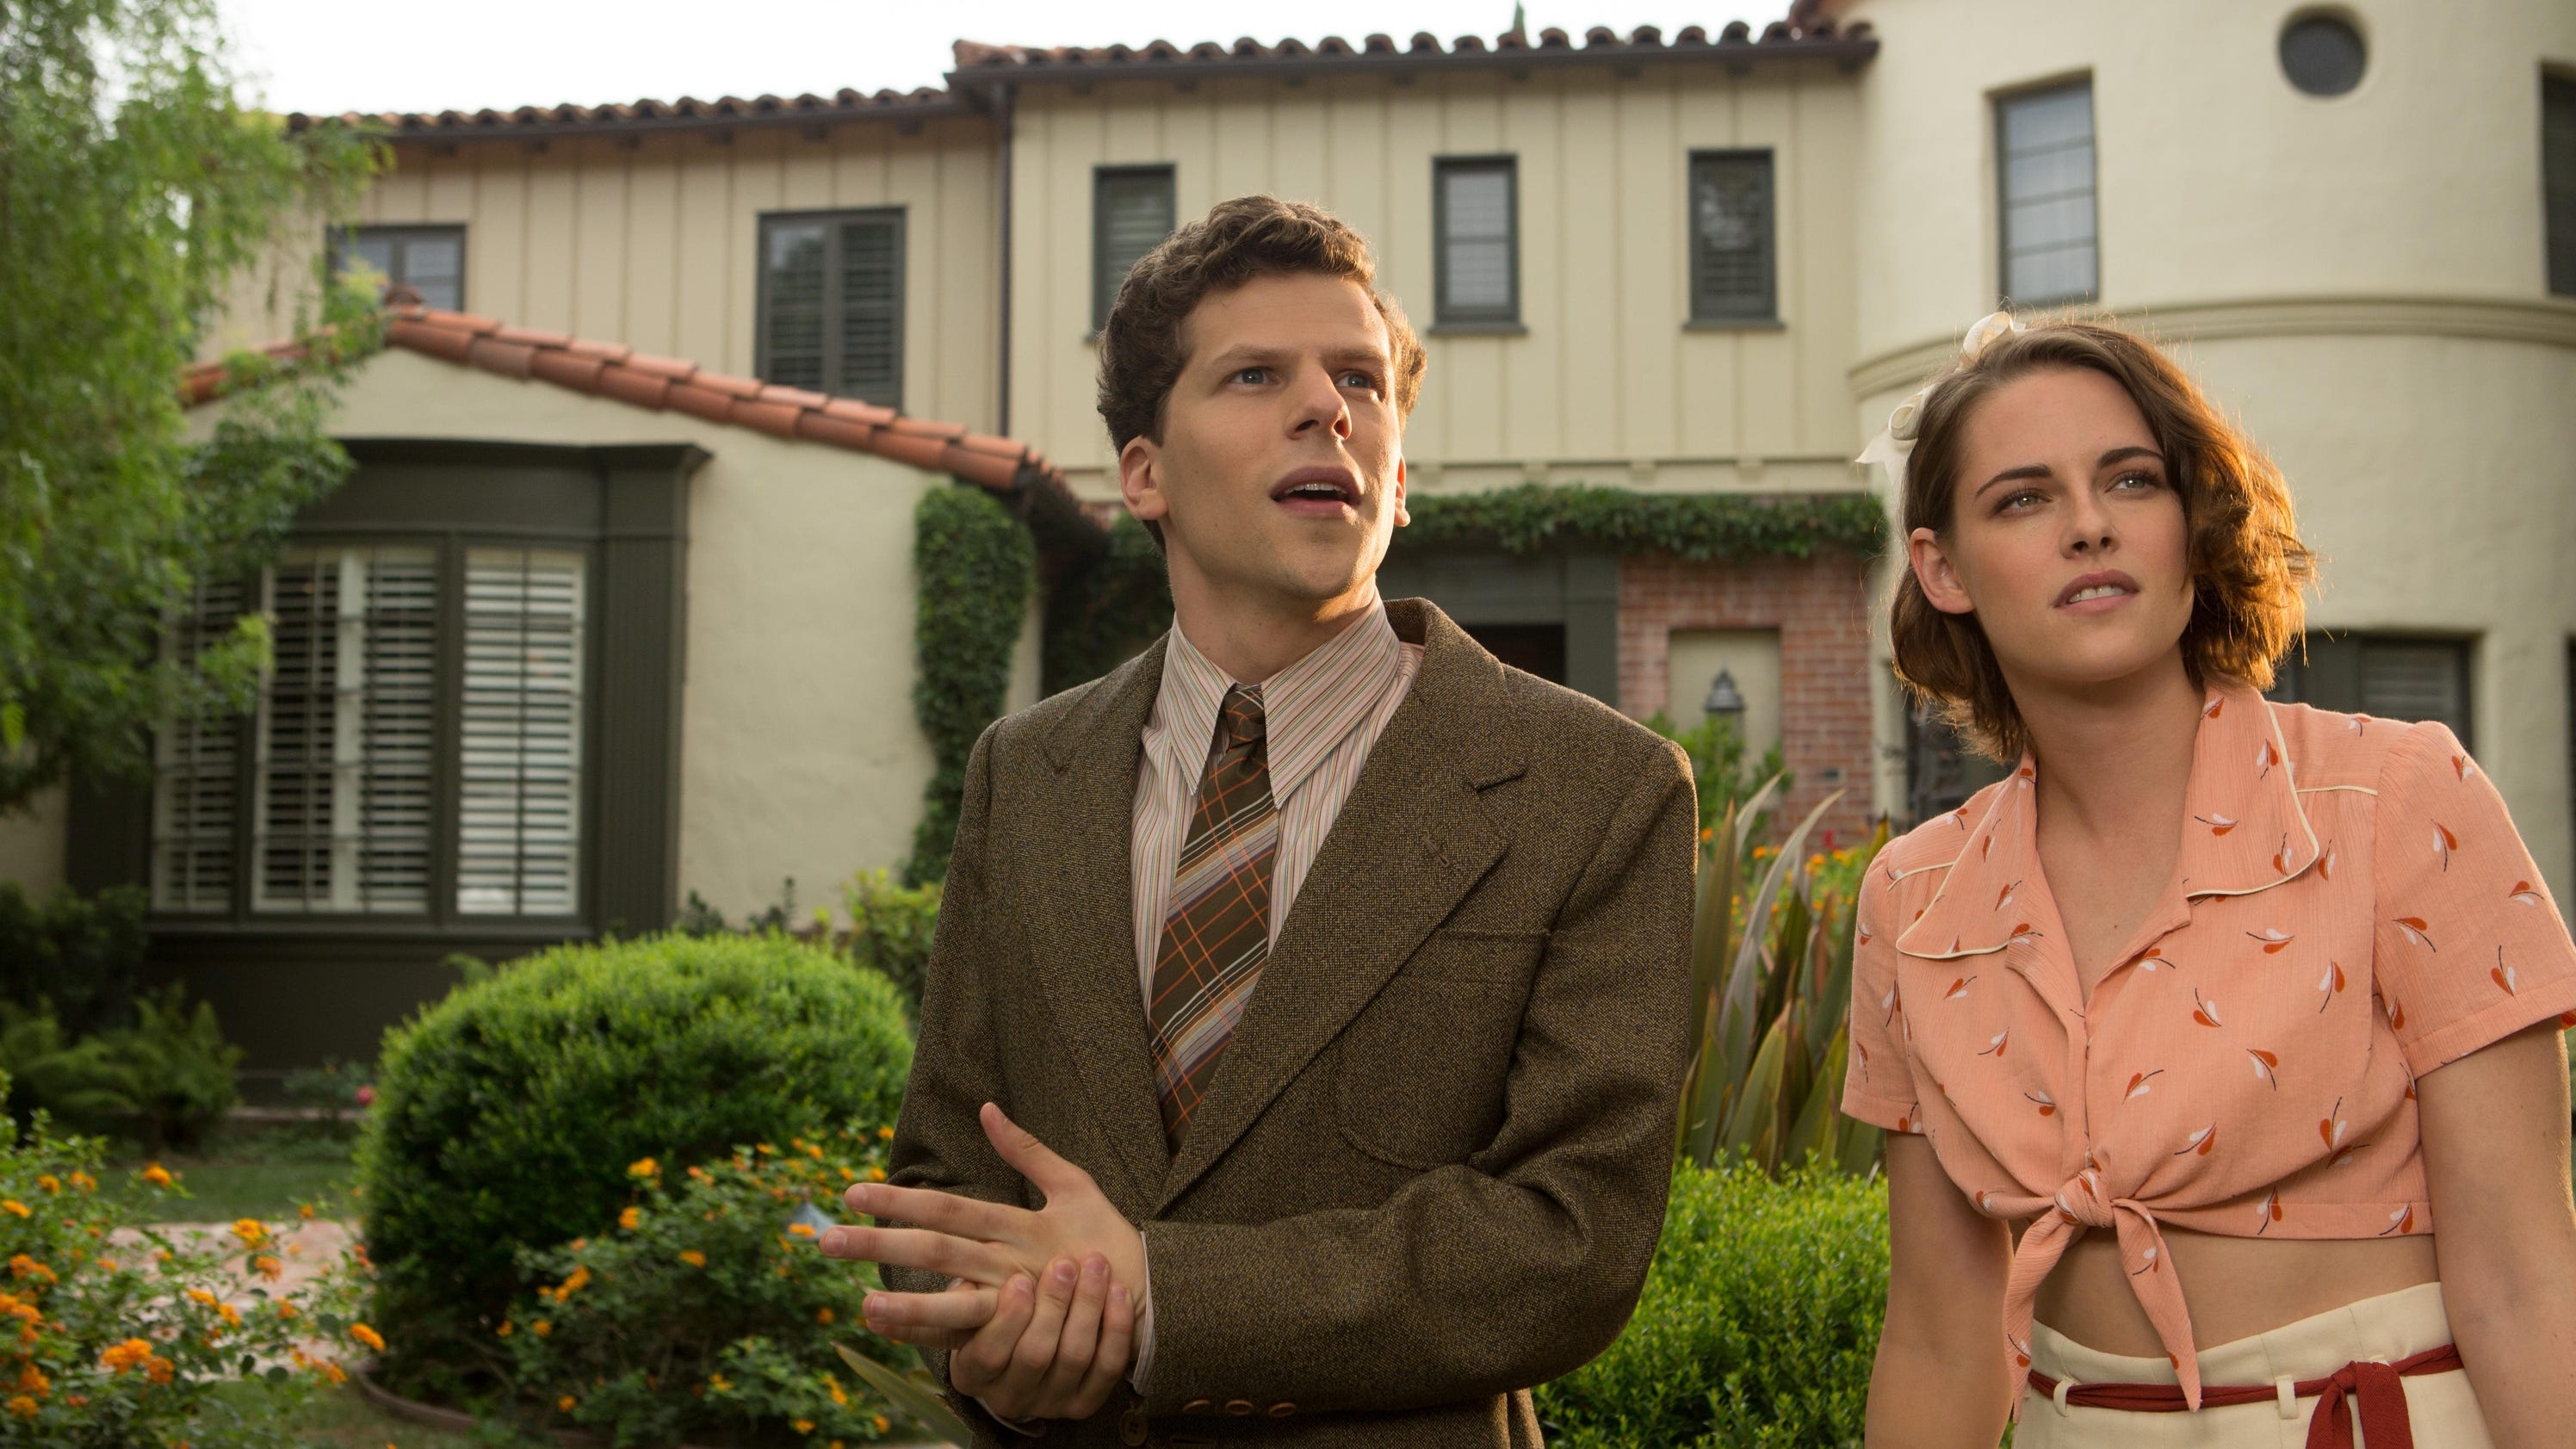 movie-review: Stewart shines in Woody Allen's 'Café Society'